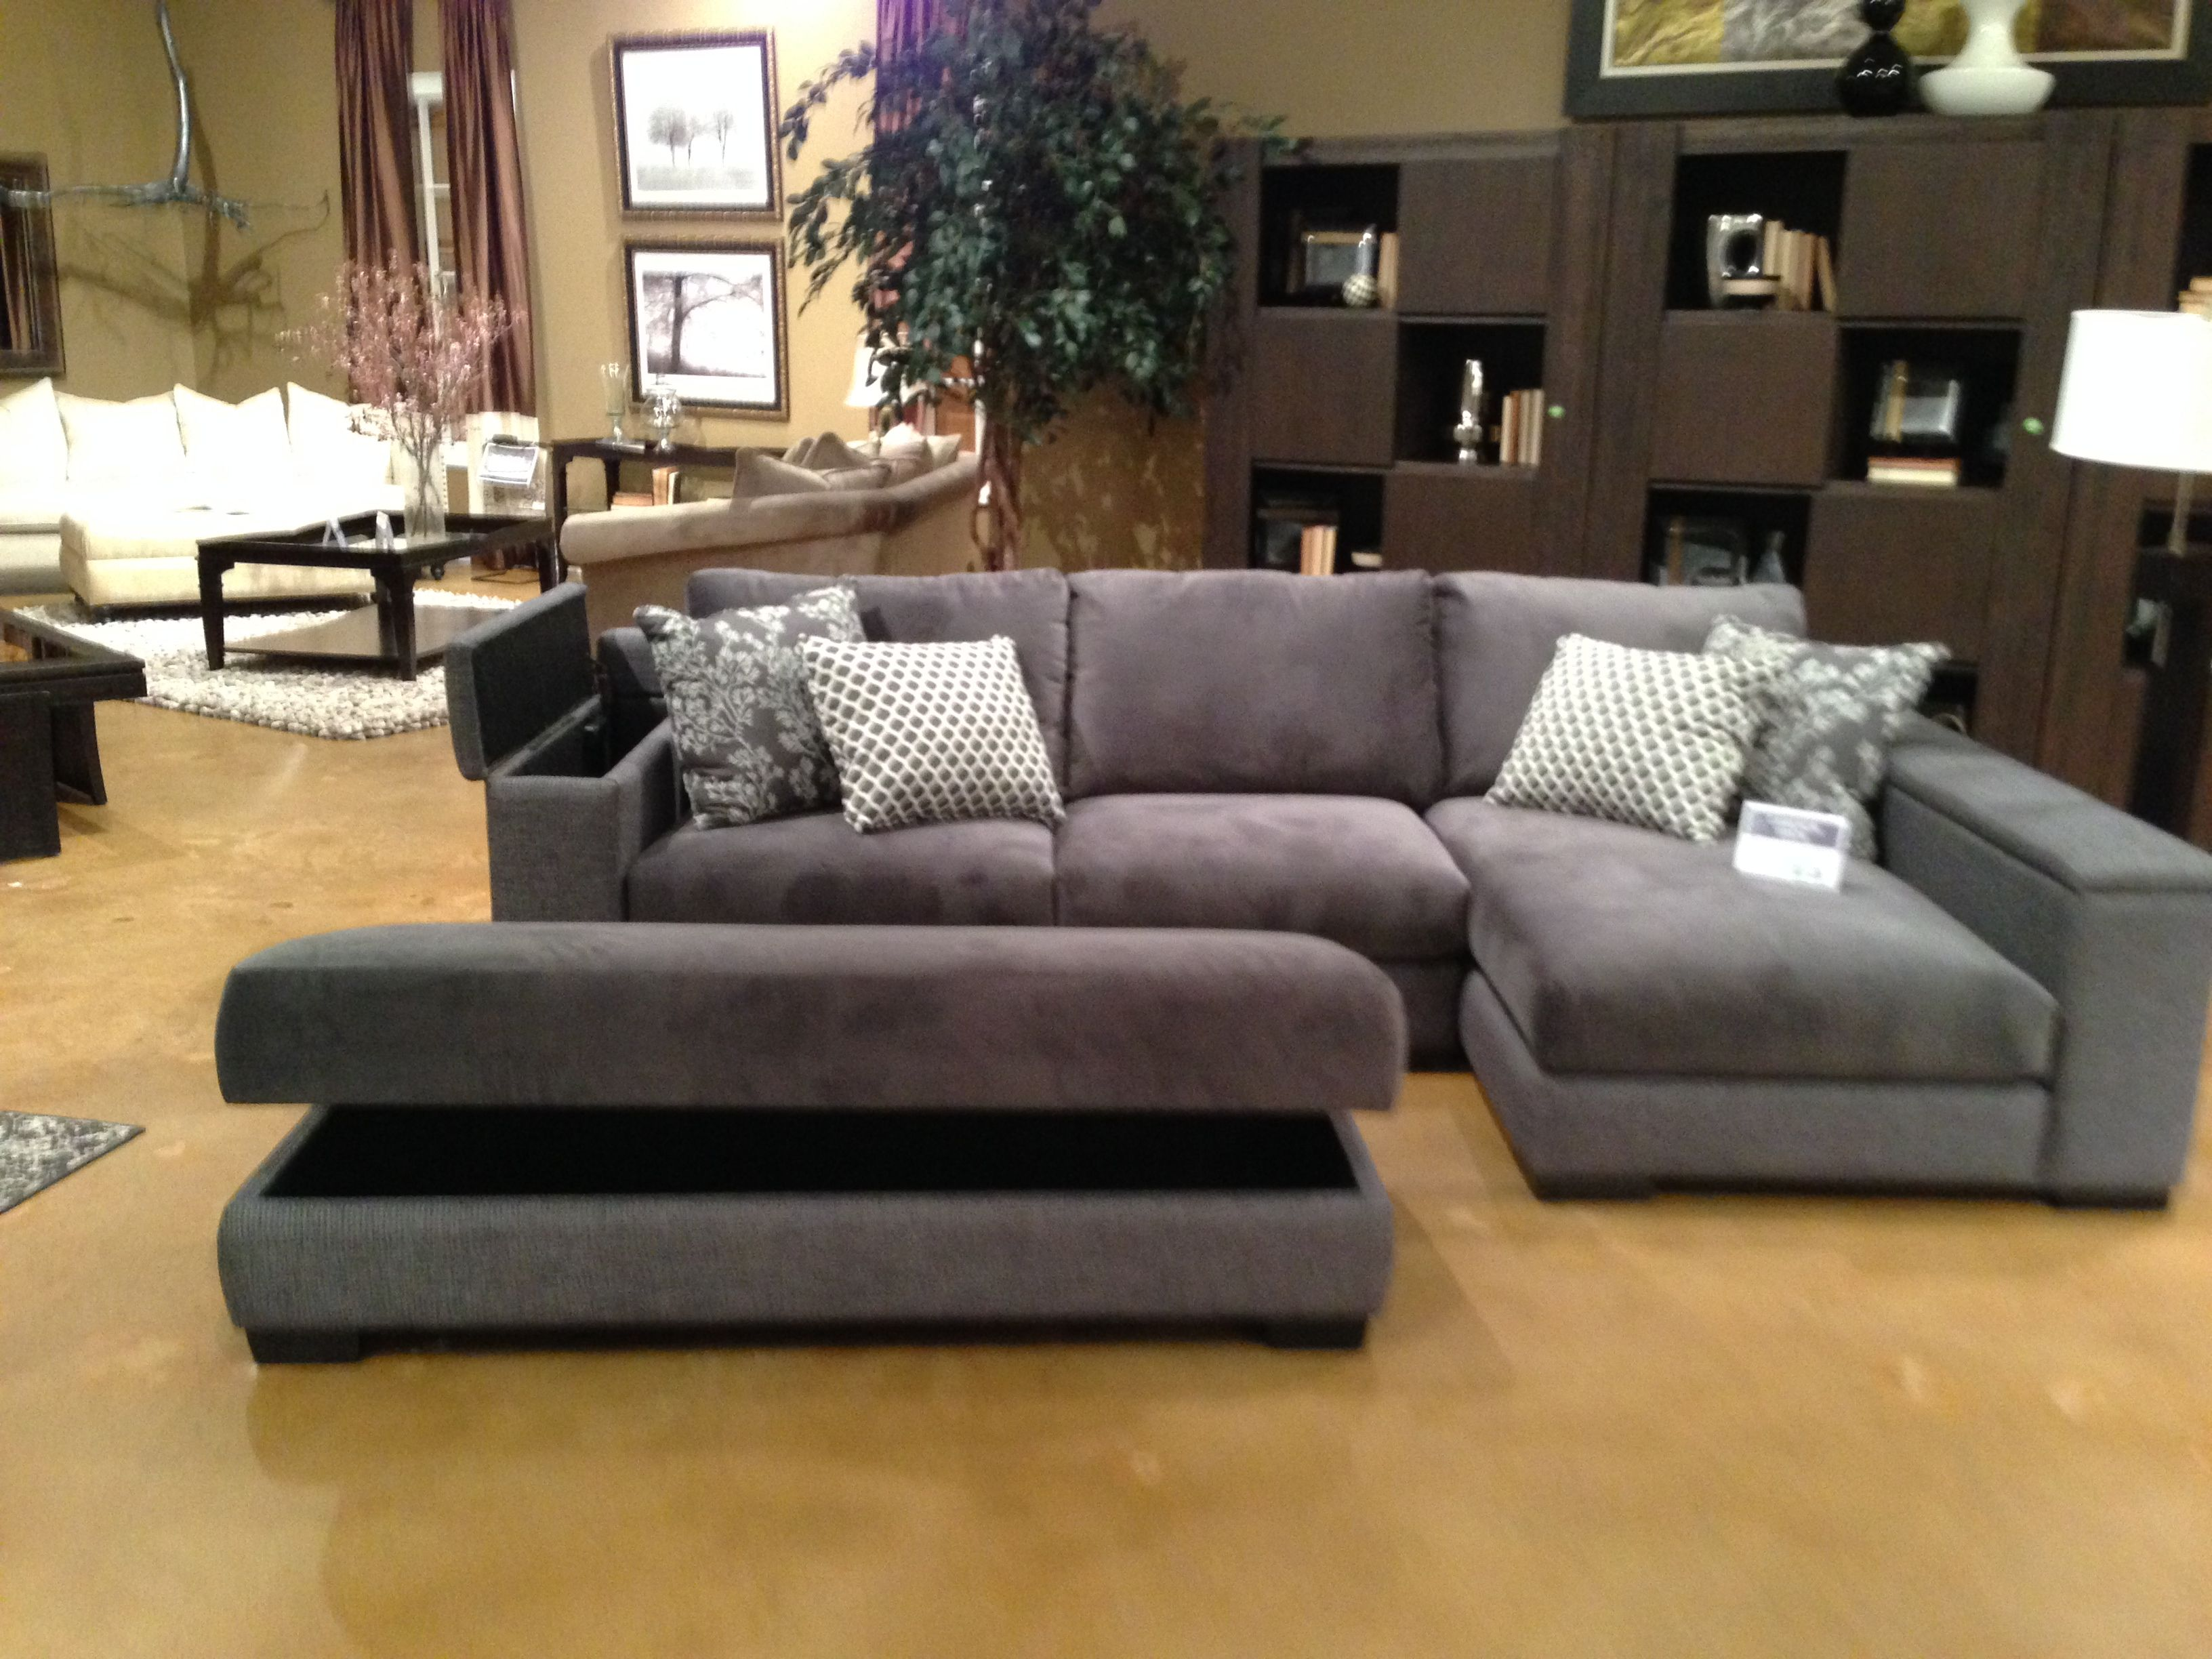 Spring 2014 Trend Grey Furniture Fairmont Designs Sectional Sofa High Point Market Look Out For It At H Furniture Design Grey Furniture Fairmont Designs